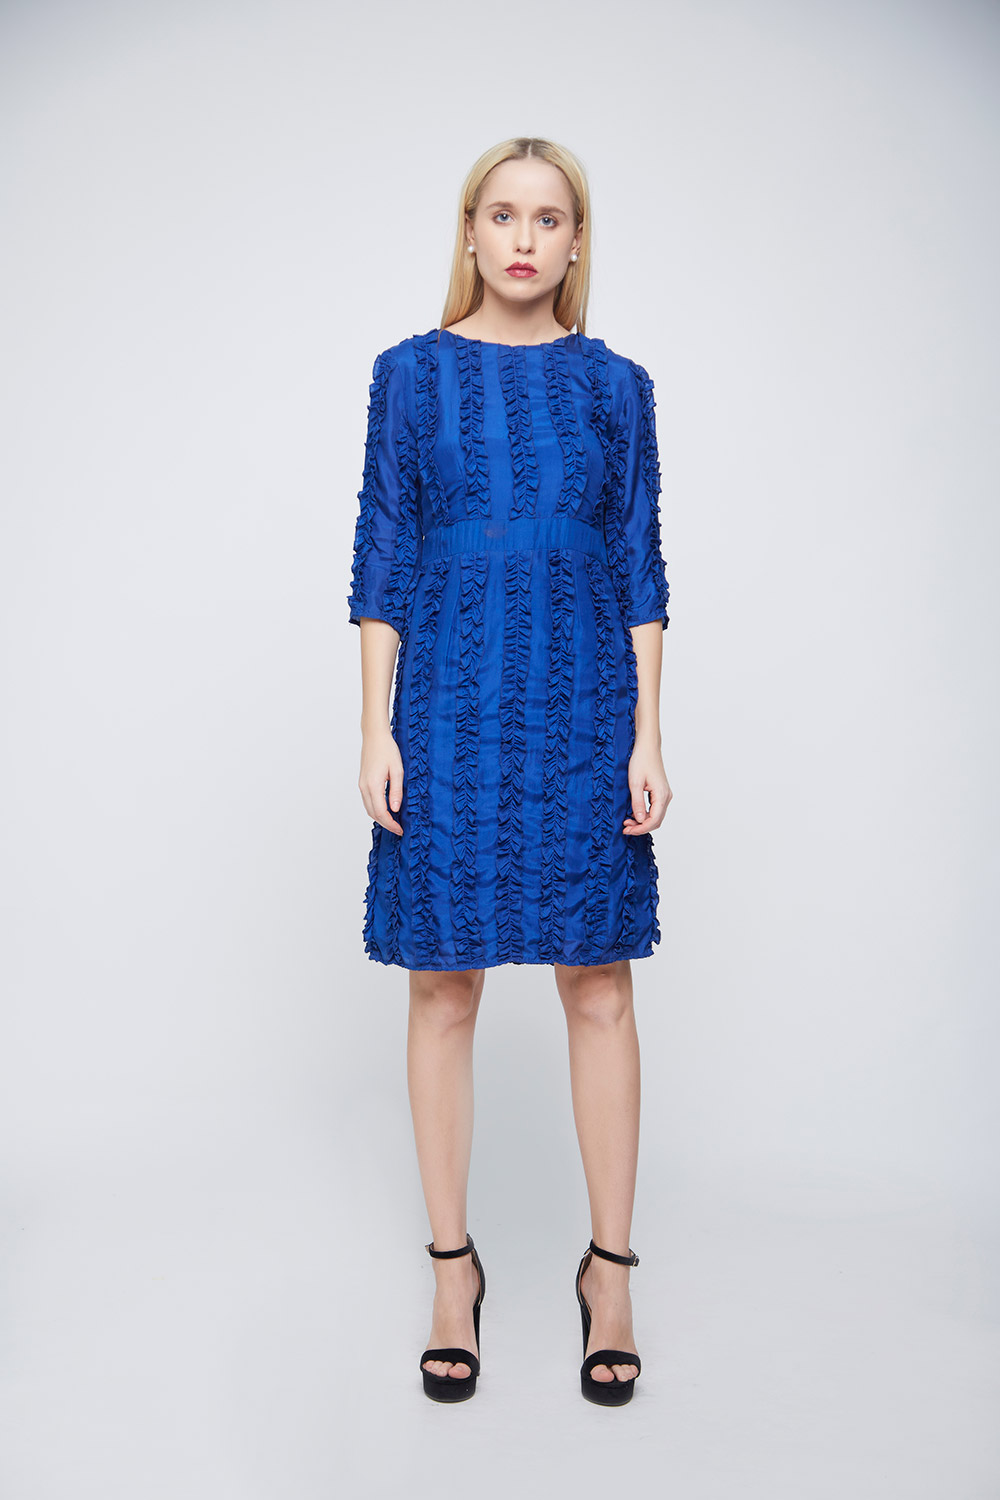 Ruffle Blue Dress -1